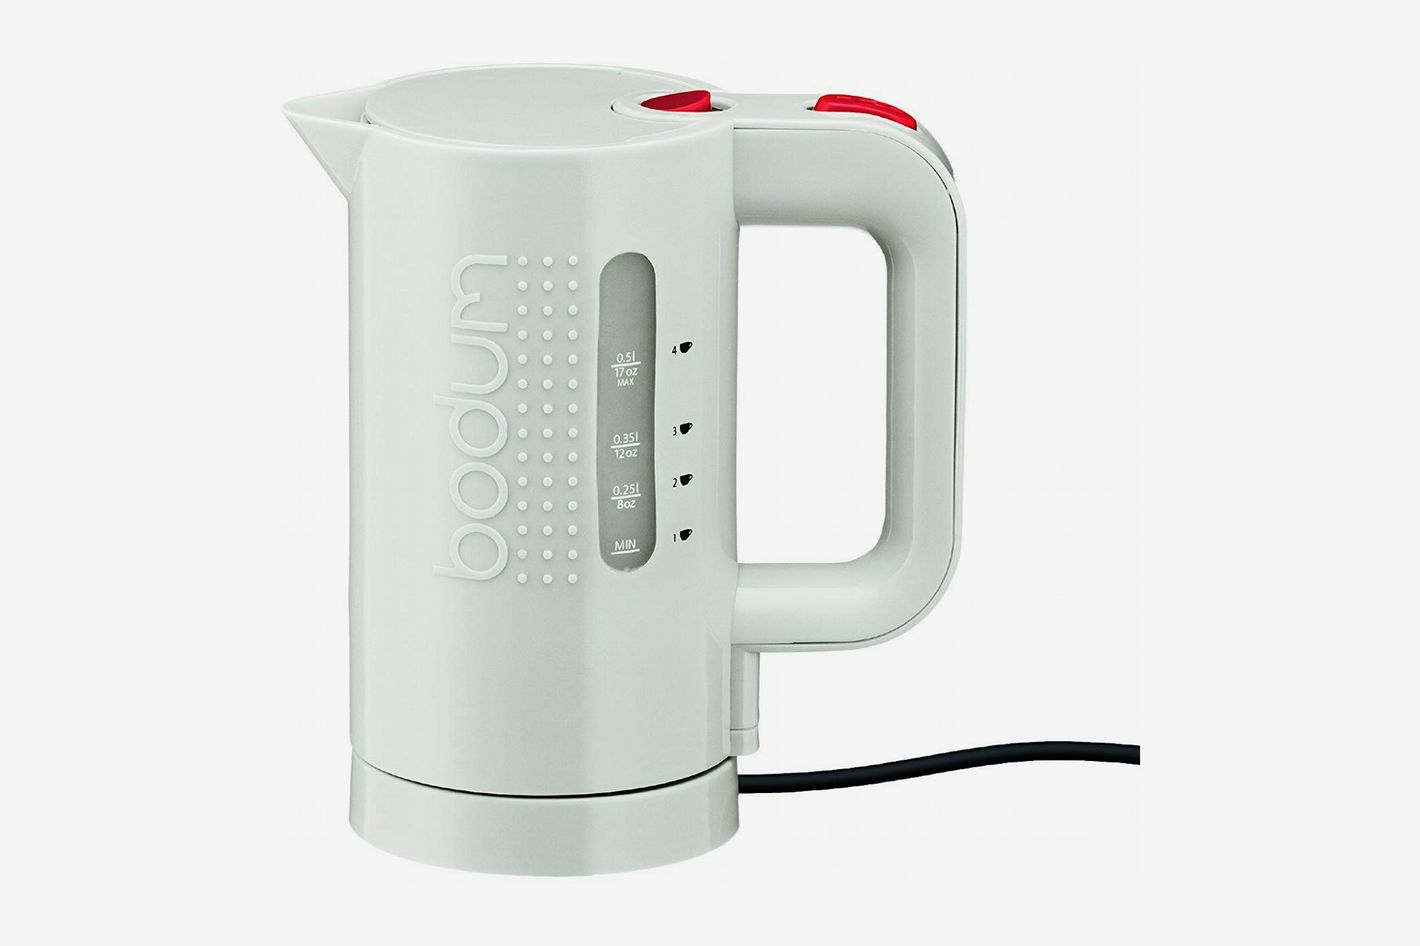 Bodum Bistro Electric Water Kettle,